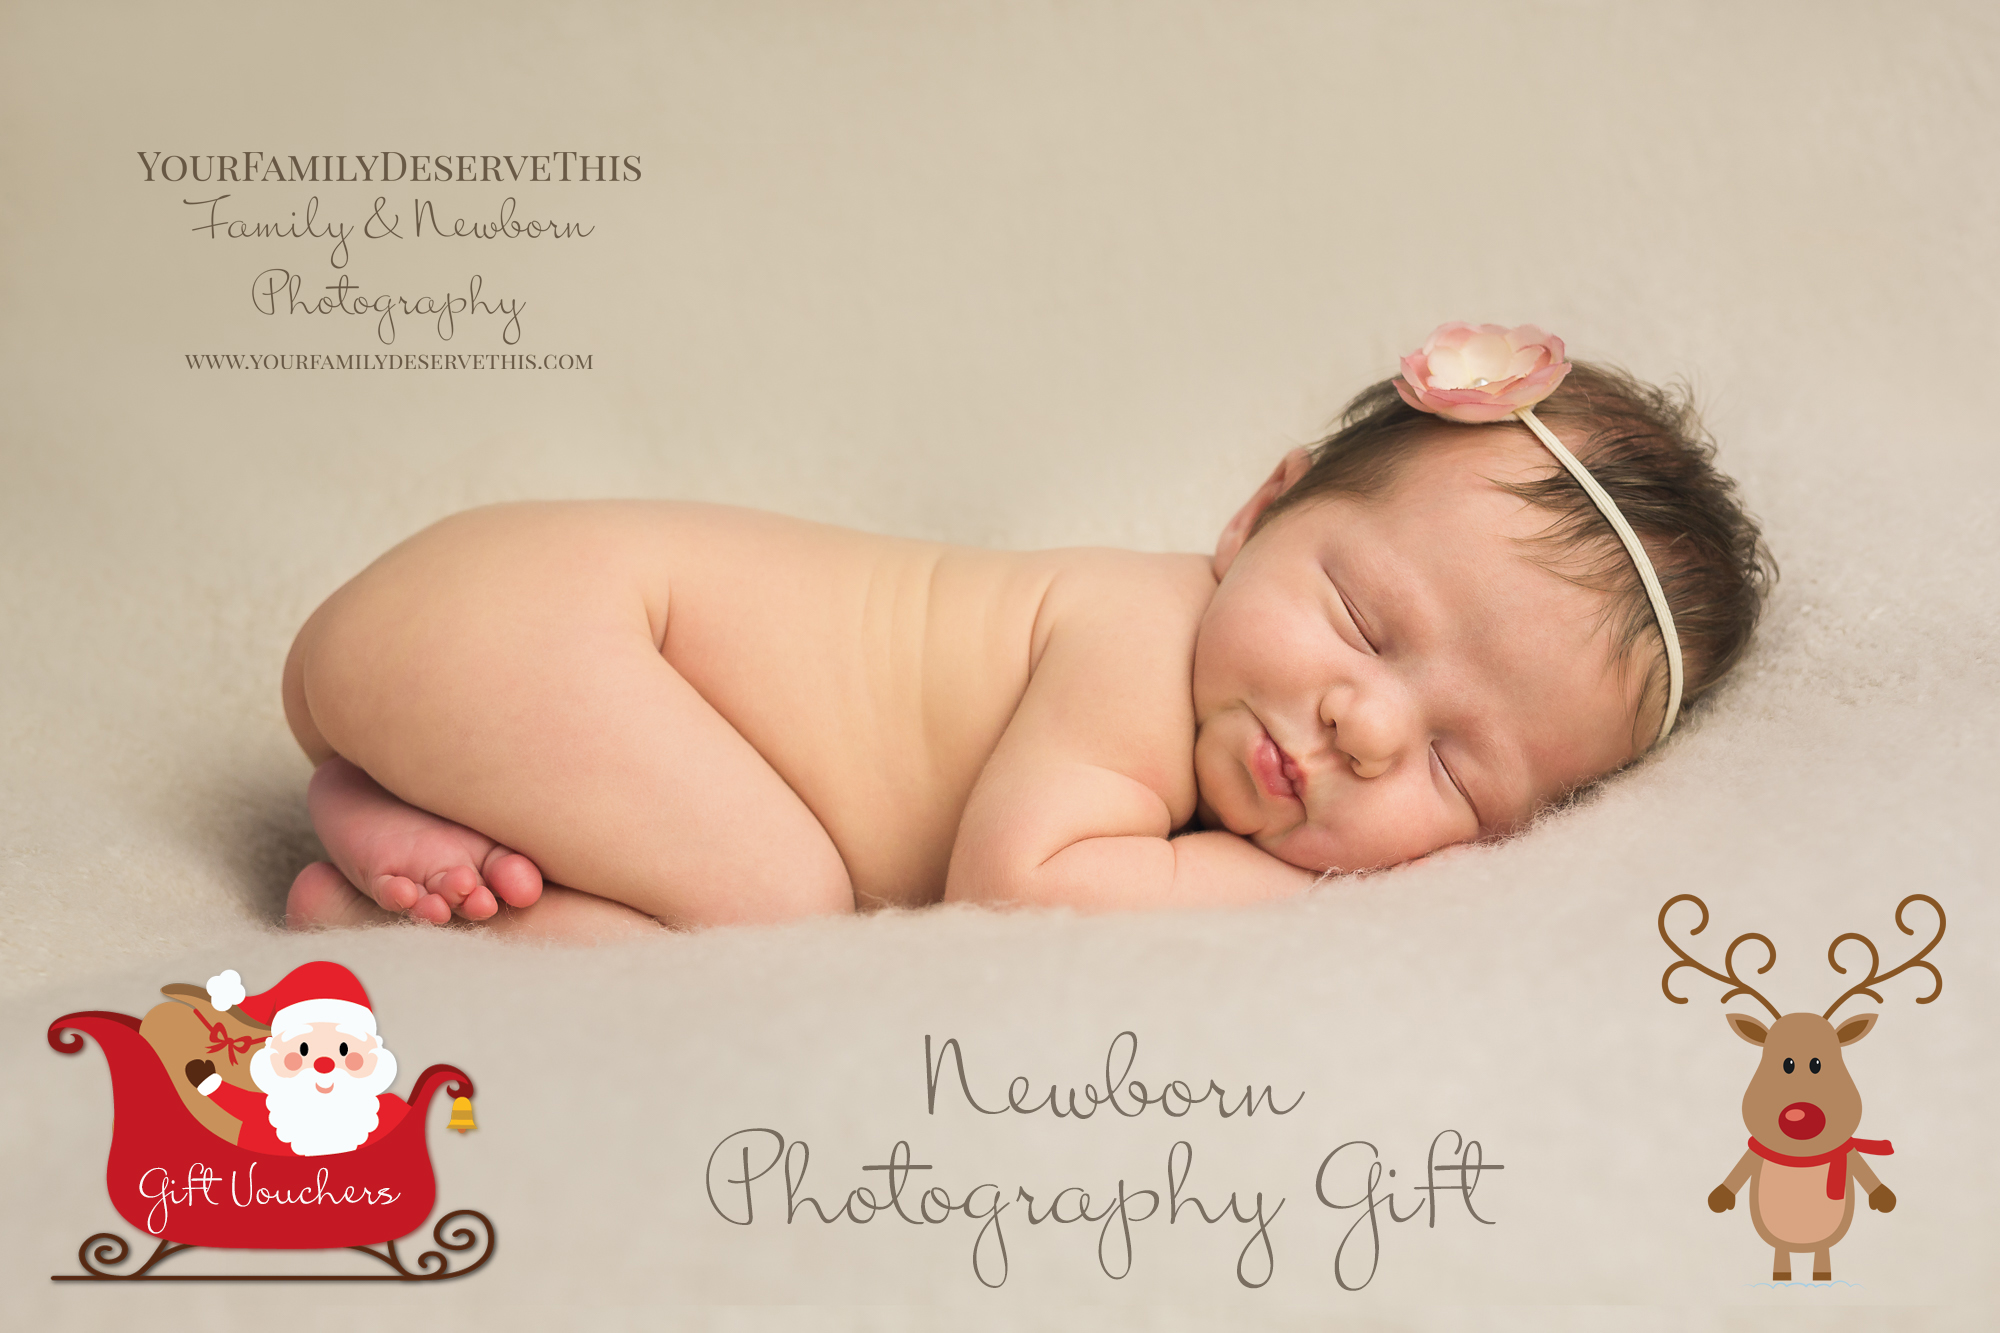 The best gift you could give a 2018 baby. Photographs to be treasured for generations.  www.yourfamilydeservethis.com